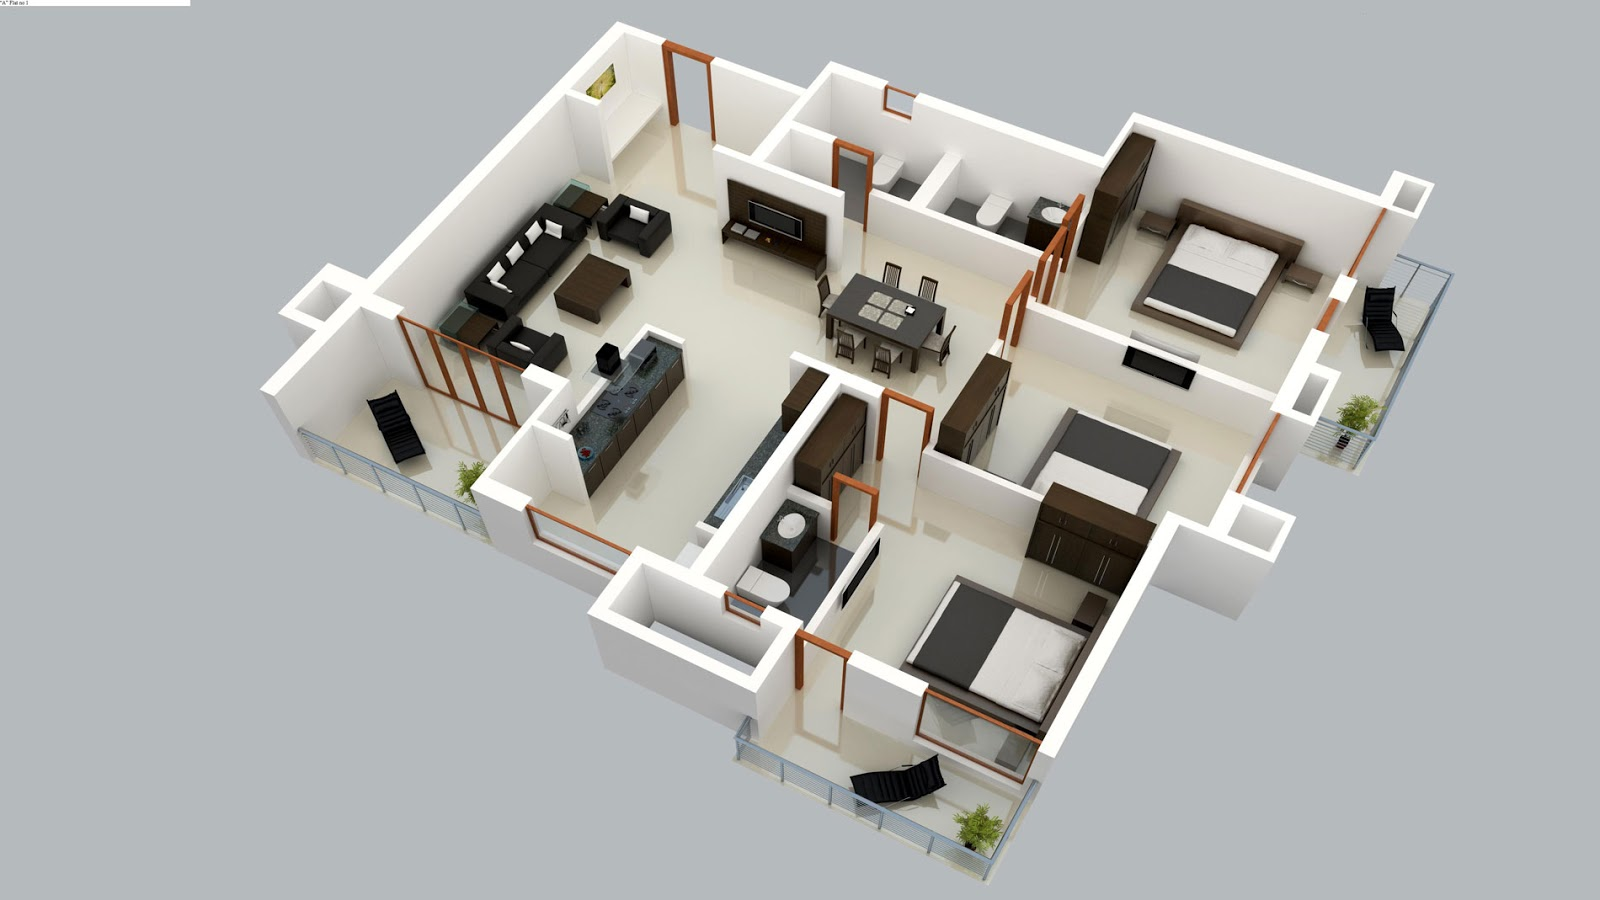 Foundation dezin decor 3d plan layout furniture Online 3d design tool